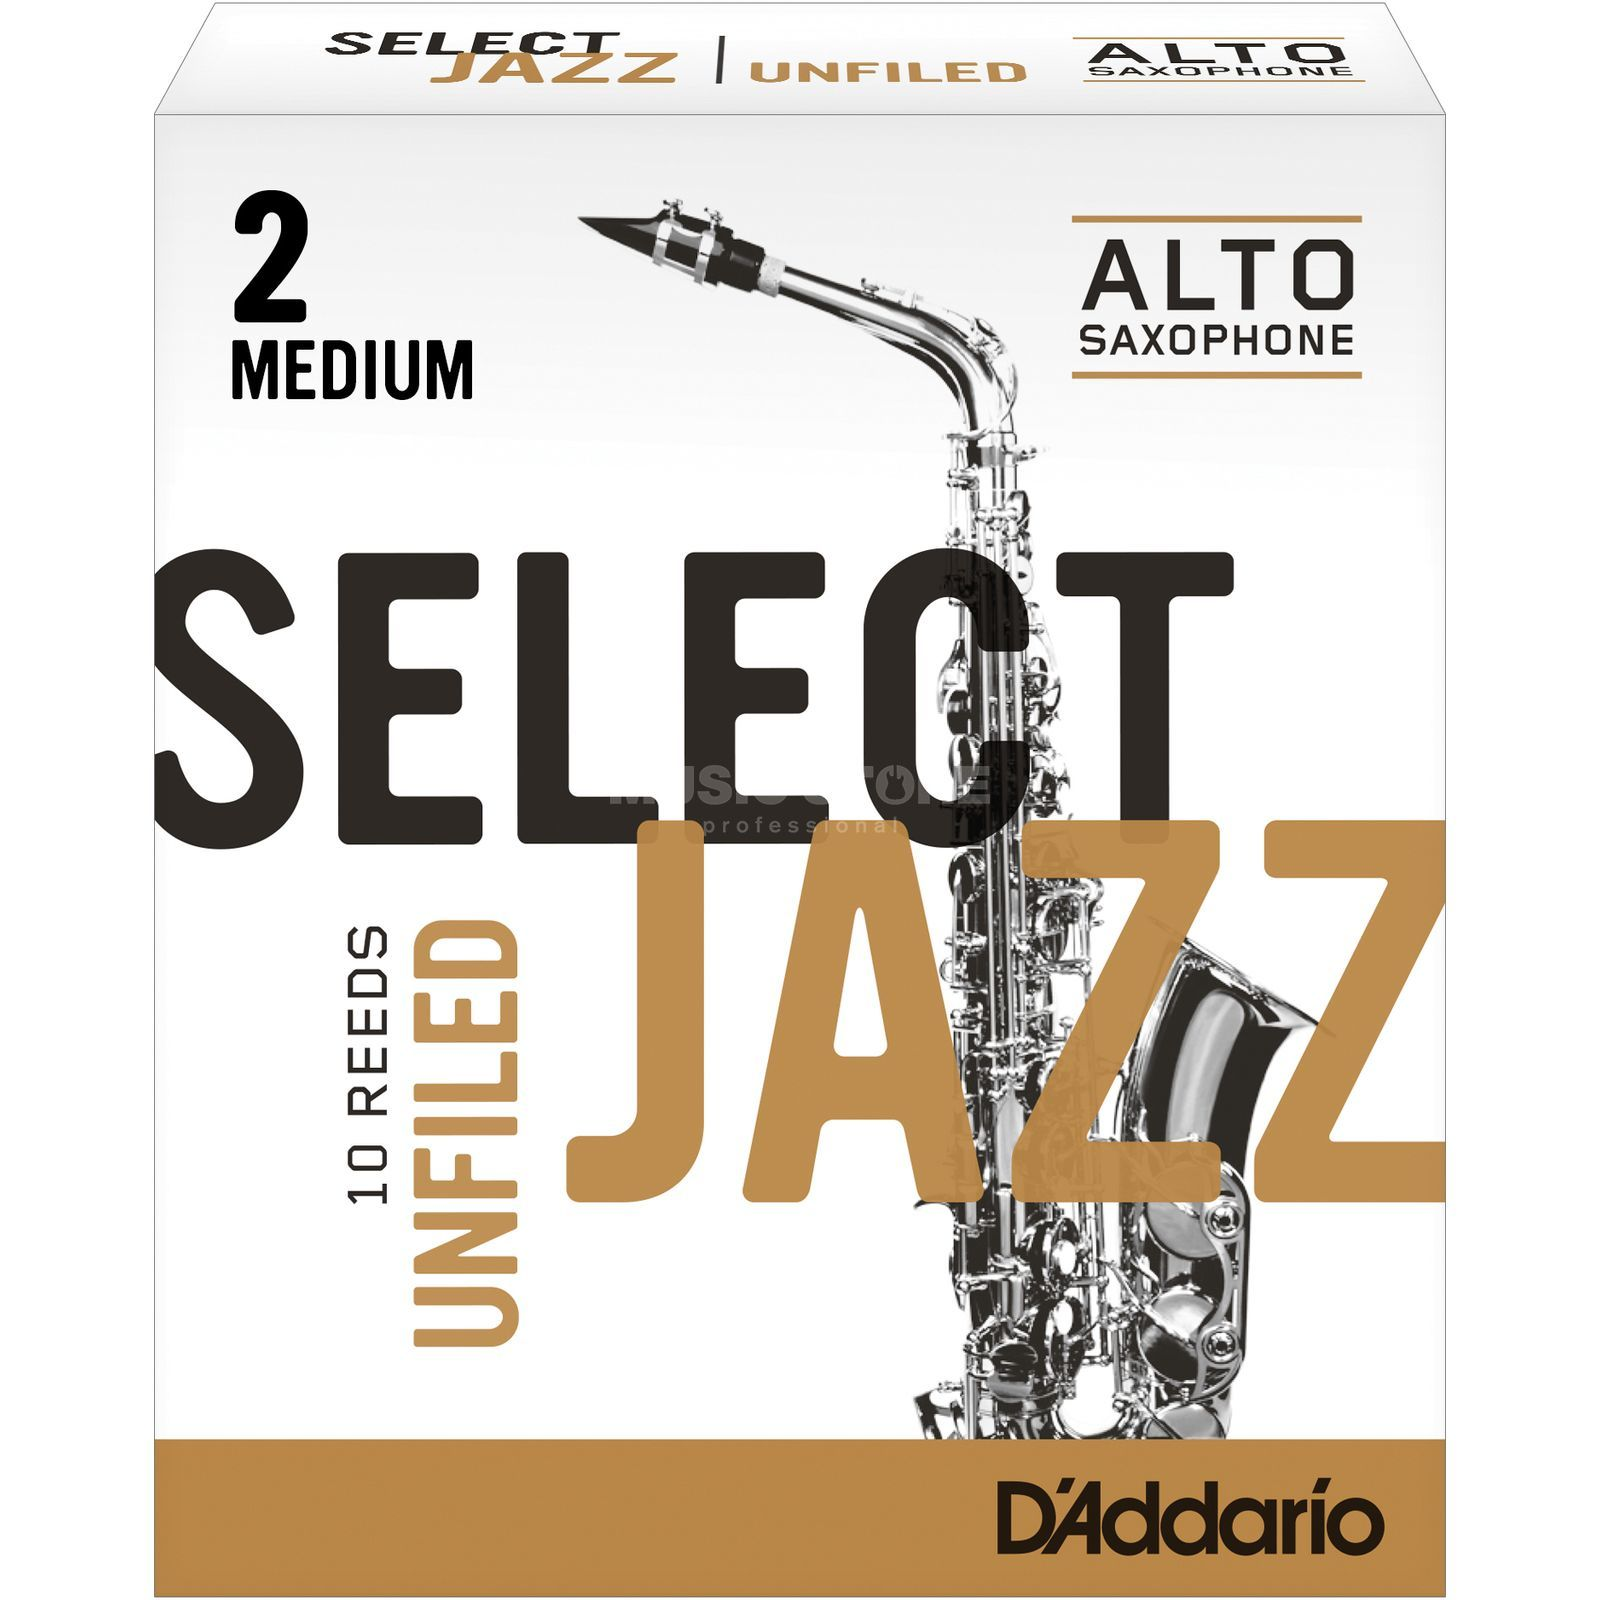 D'Addario Woodwinds Altsaxofoon  2M Unfiled doos met 10 rieten Productafbeelding